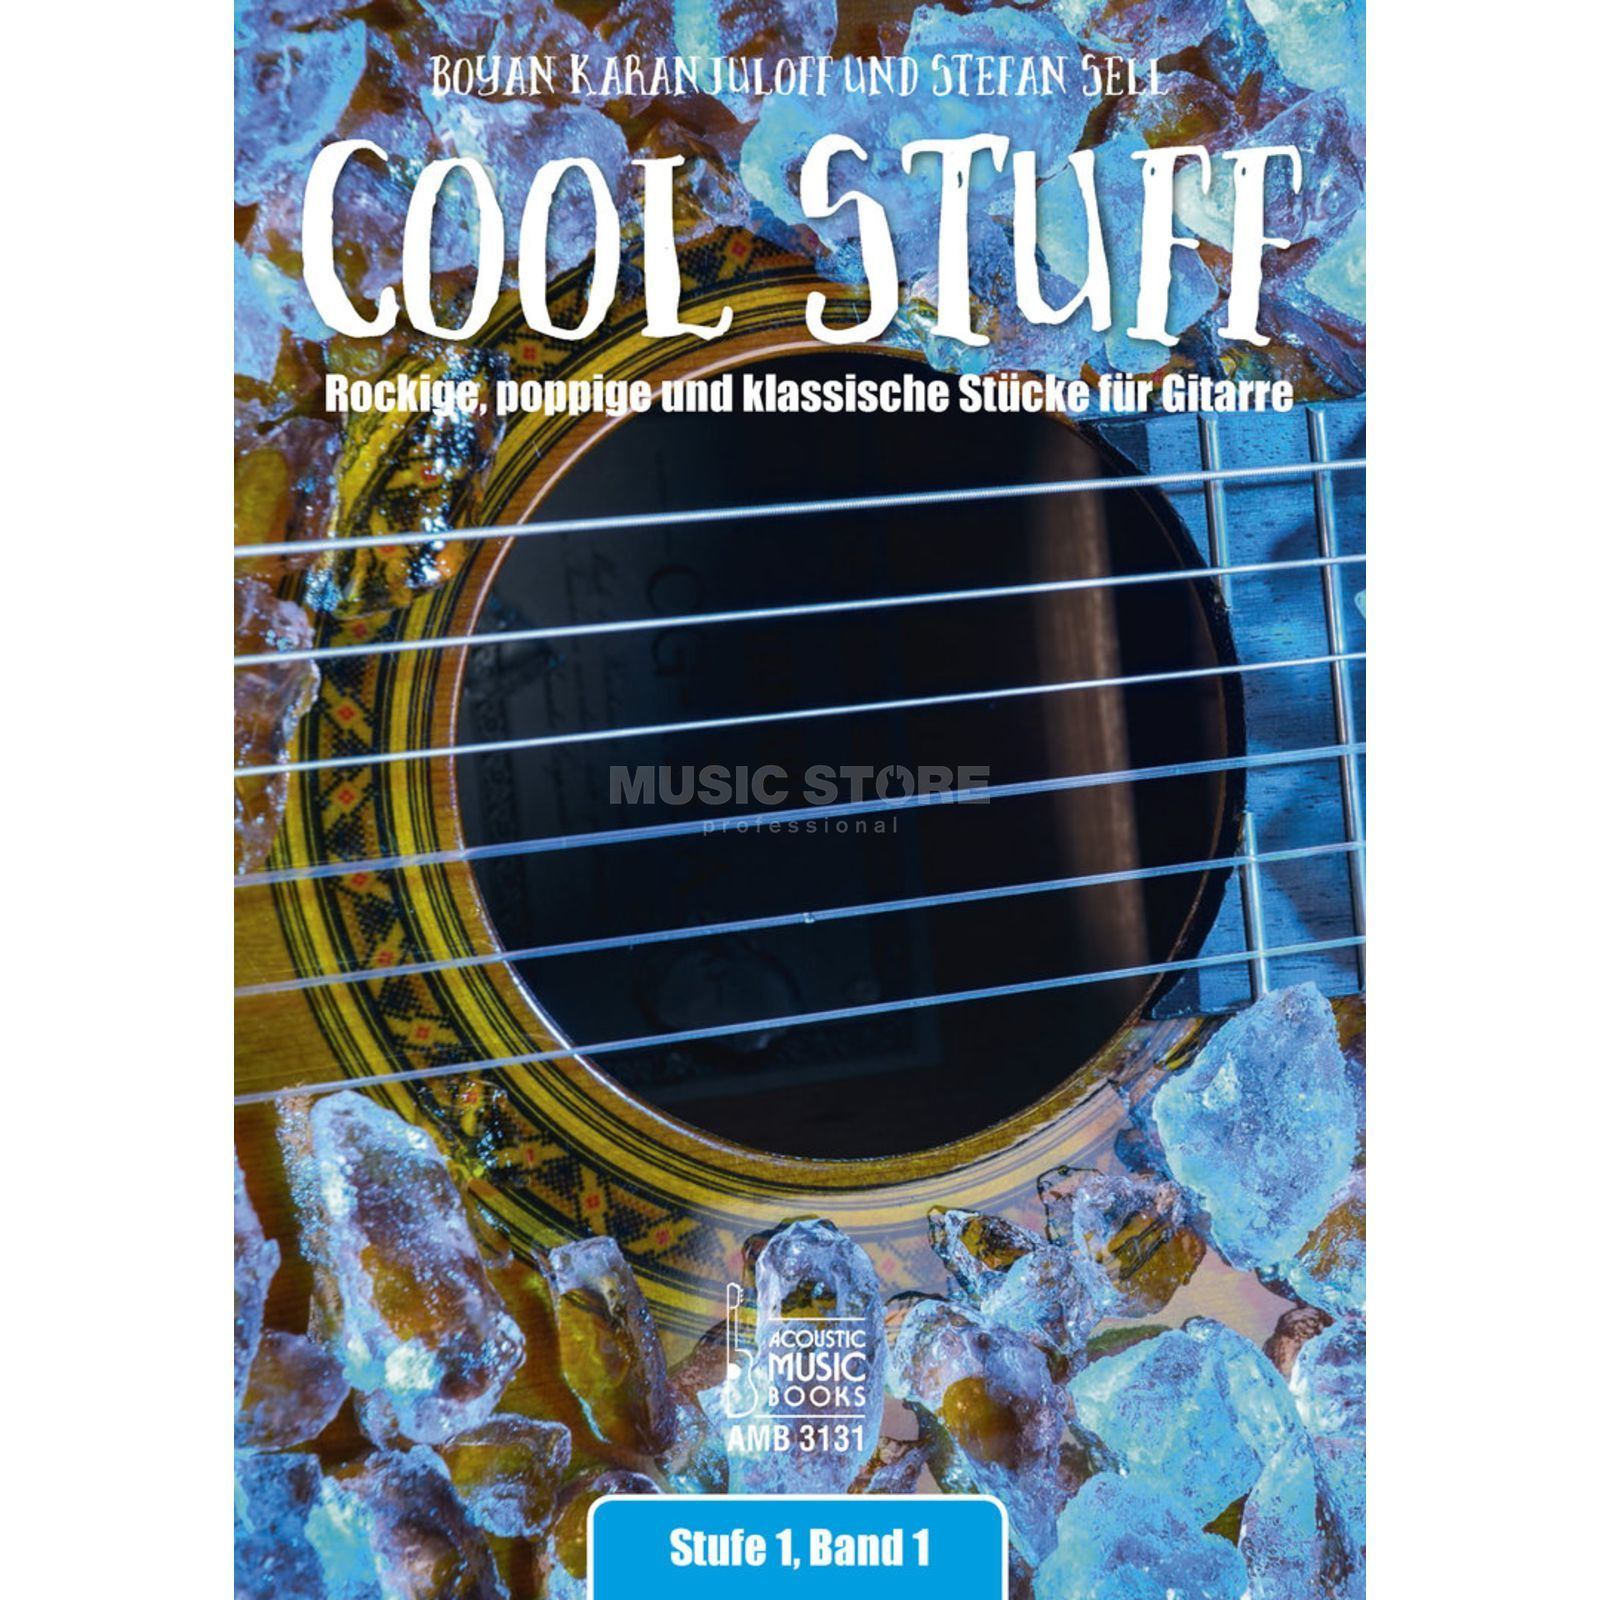 Acoustic Music Books Cool Stuff Karanjuloff, Sell TAB Produktbild